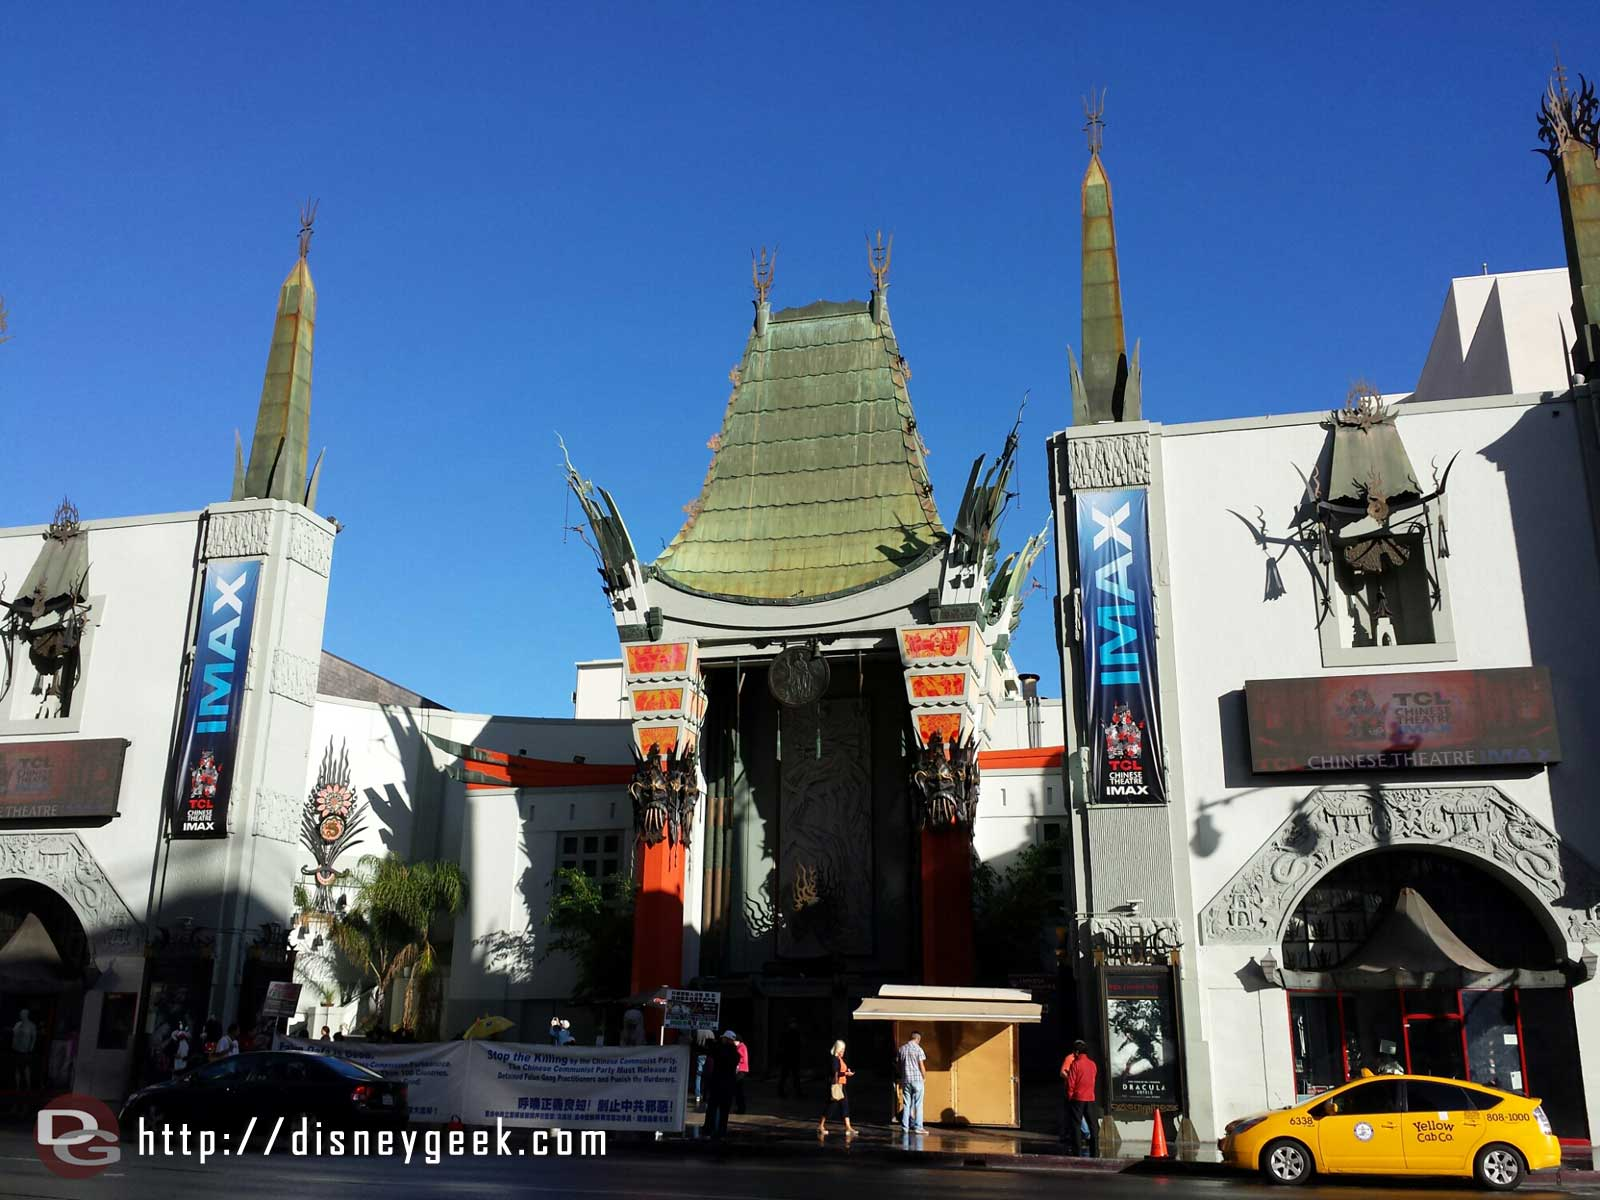 The Chinese theater in Hollywood